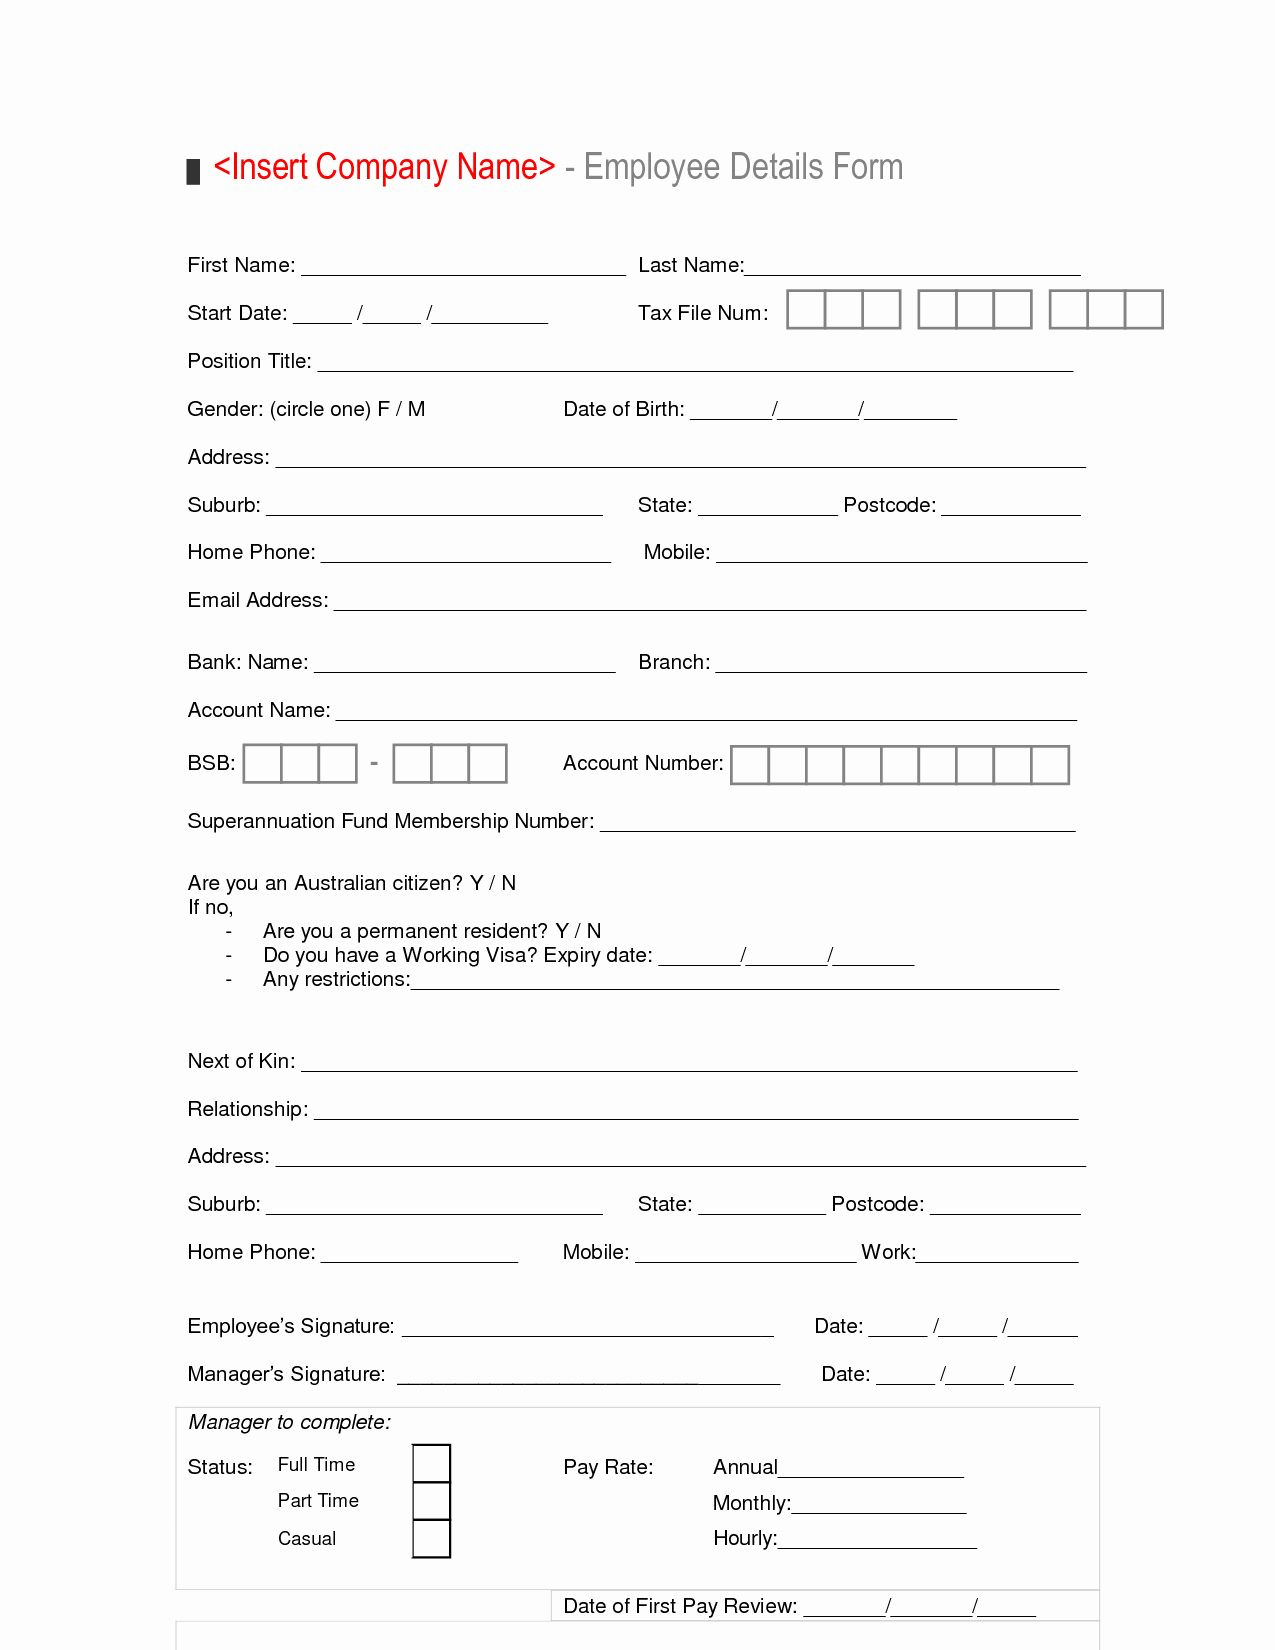 Employment Information Form Template Luxury New Hire Employee Details Form Template Sample Vlashed New Employee Orientation New Employee Employment Form